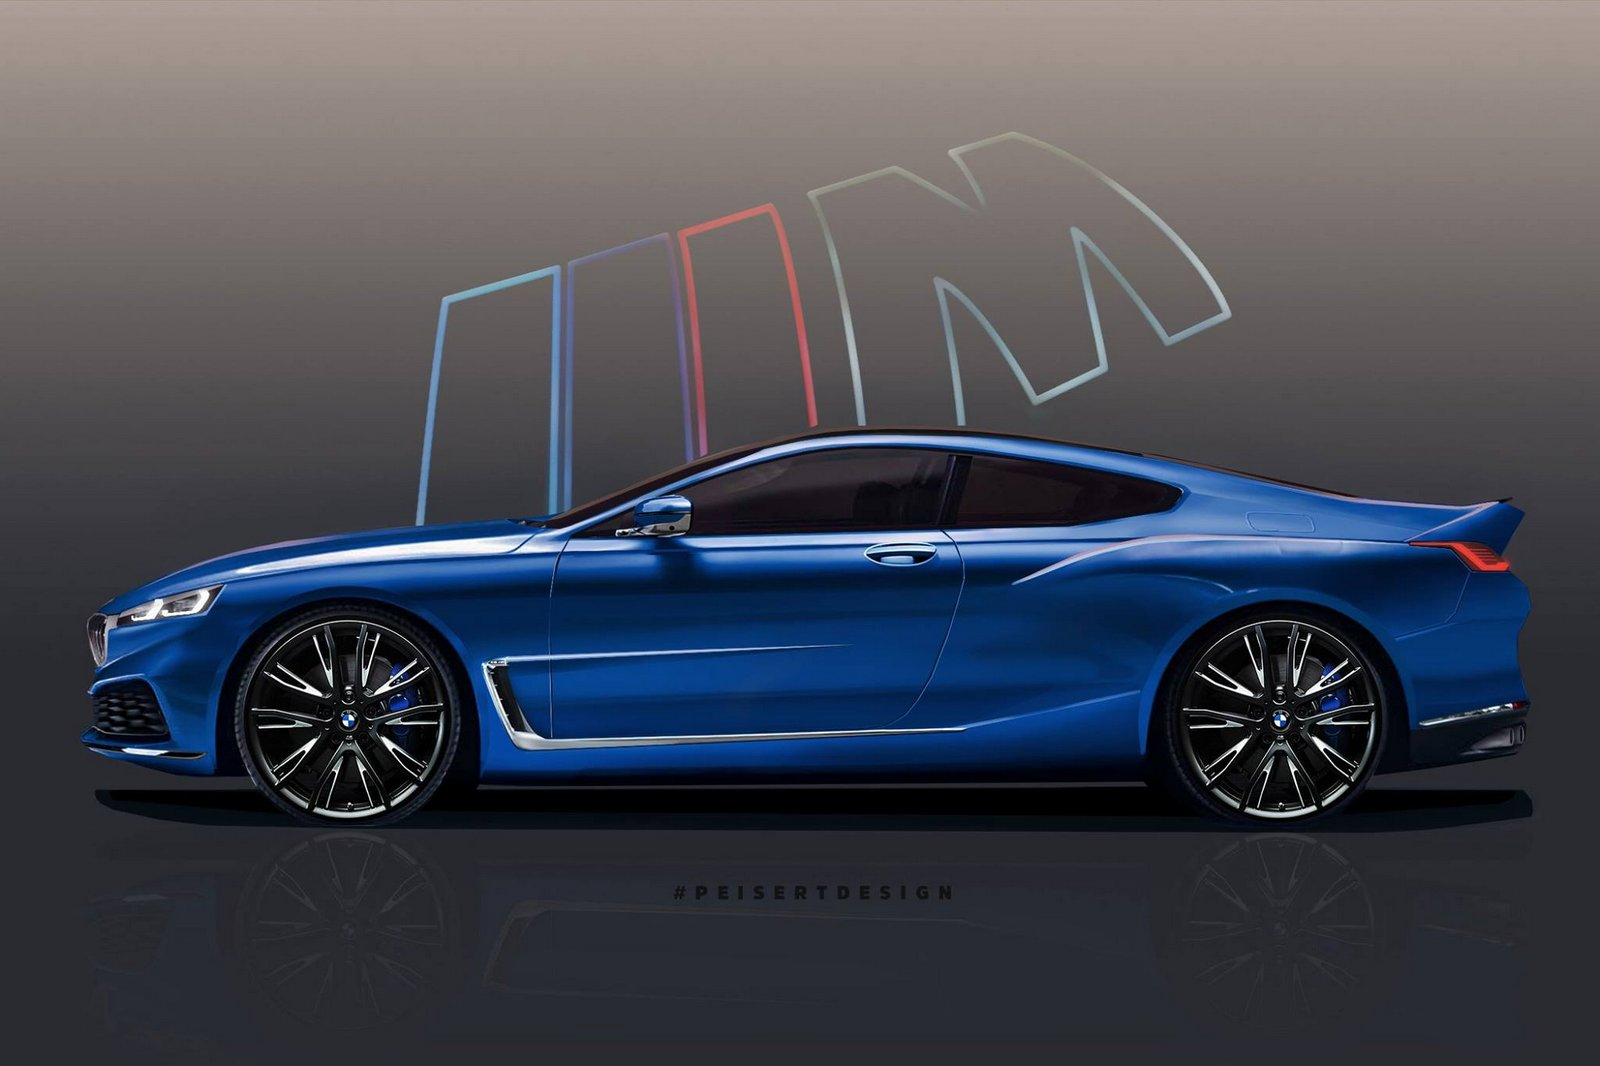 2019 Bmw 8 Series Rendered Concept Debuts Later This Week Carscoops